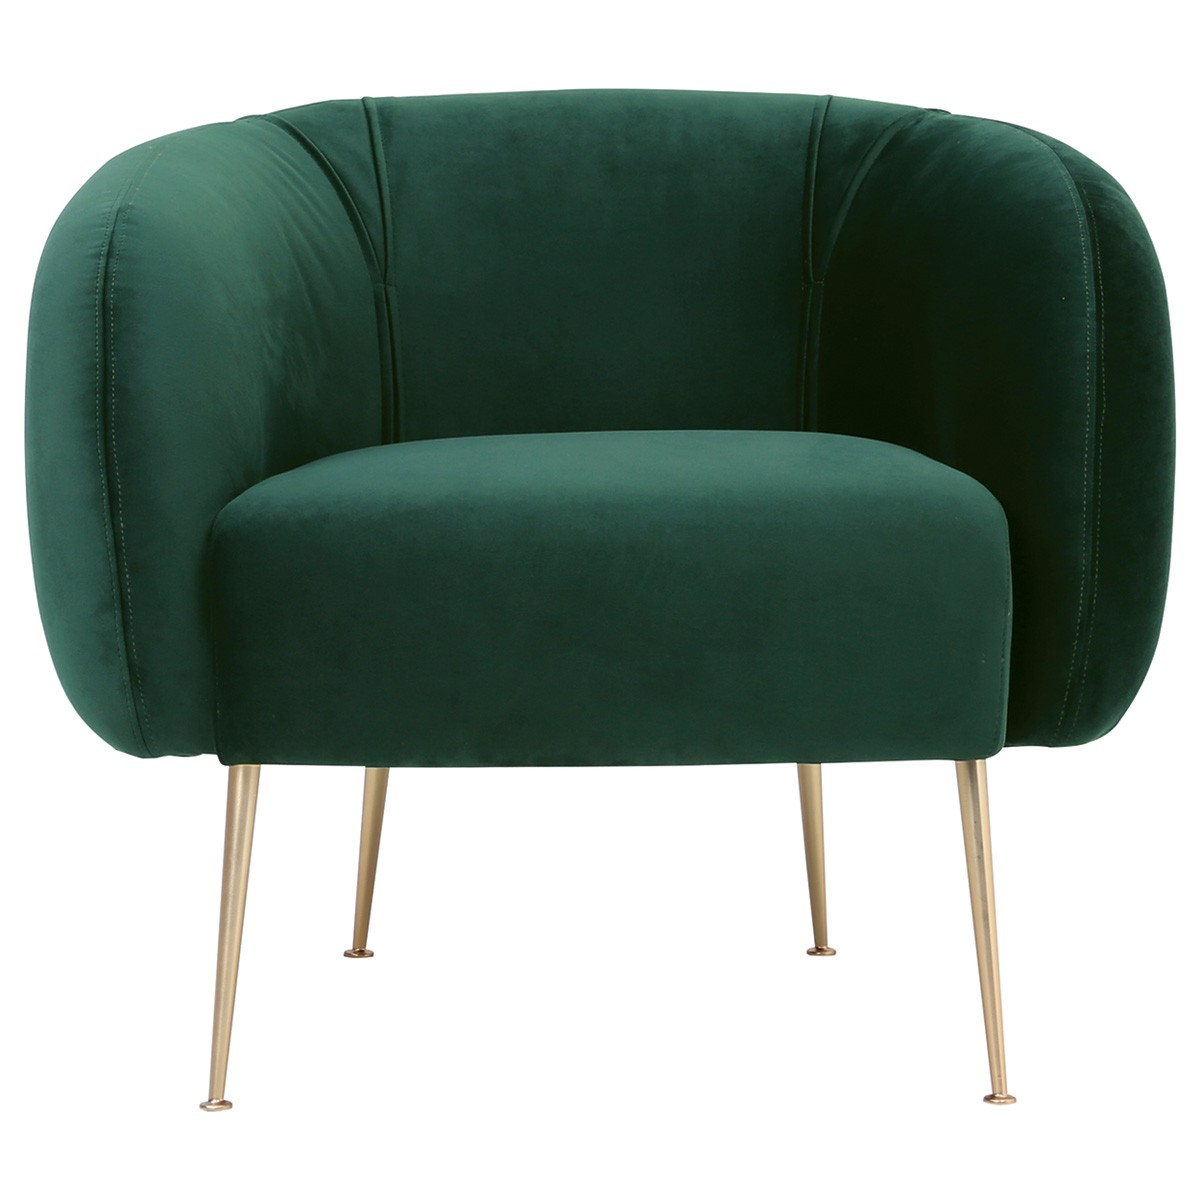 Alero VCommercial Grade eloutine Fabric Armchair, Dark Green